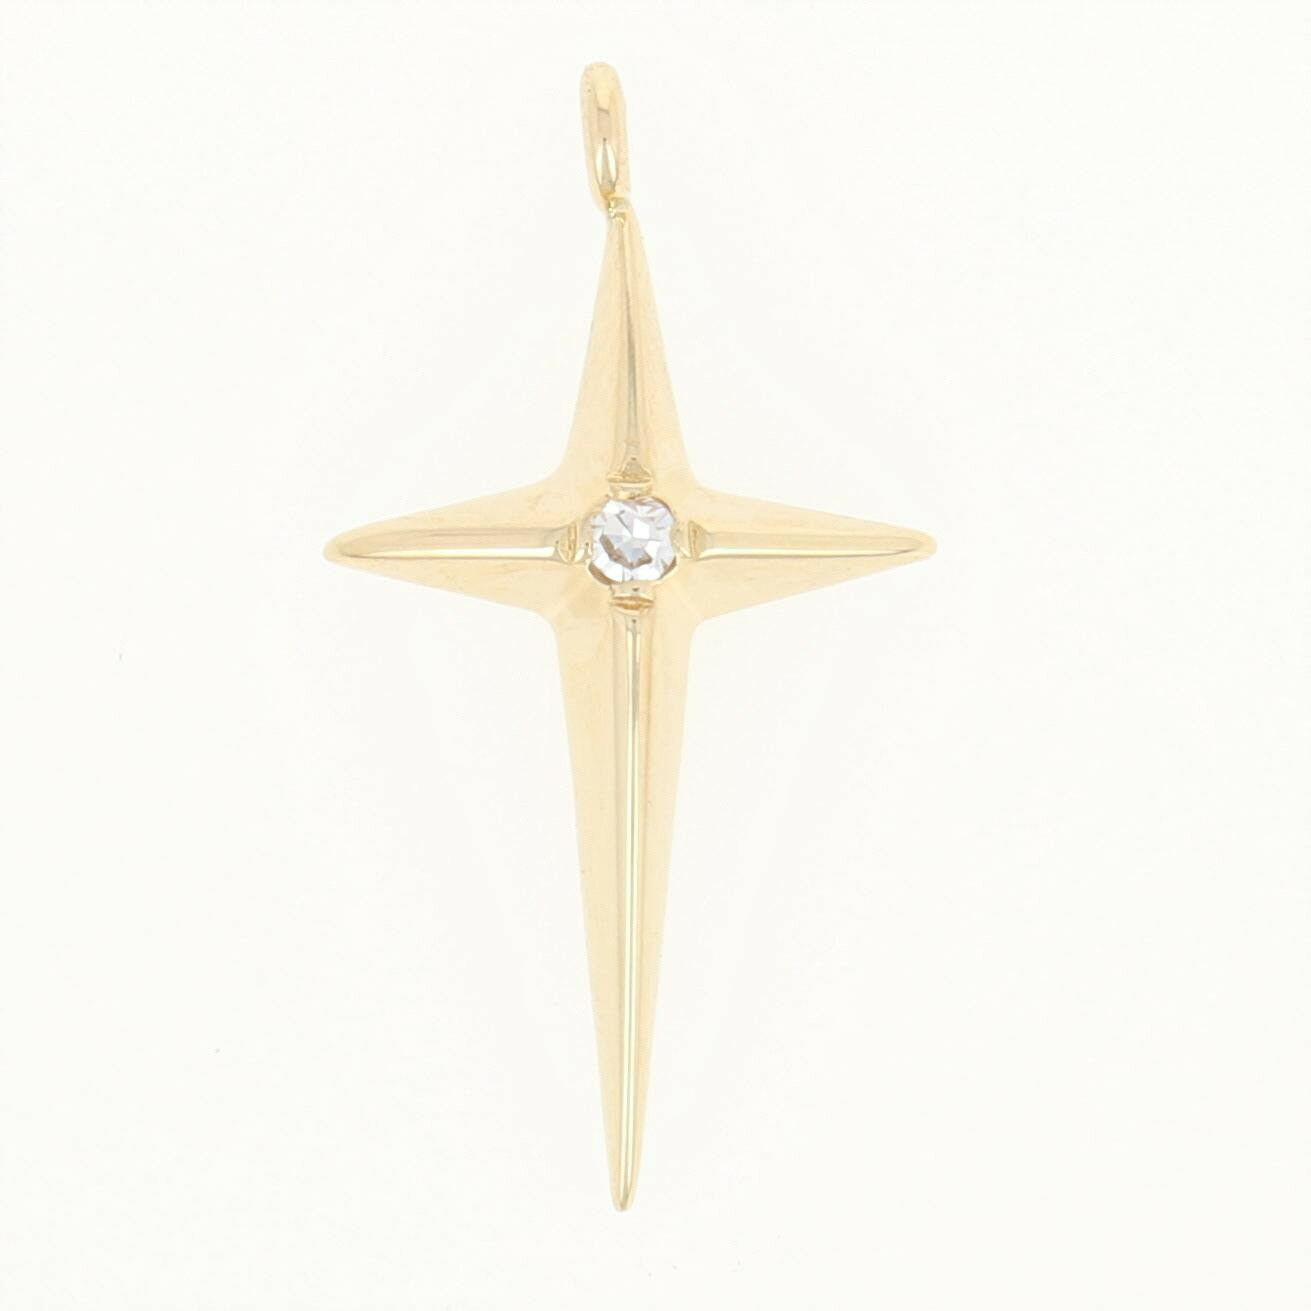 Tapered Cross Pendant - 14k Yellow gold Diamond-Accented Faith Gift